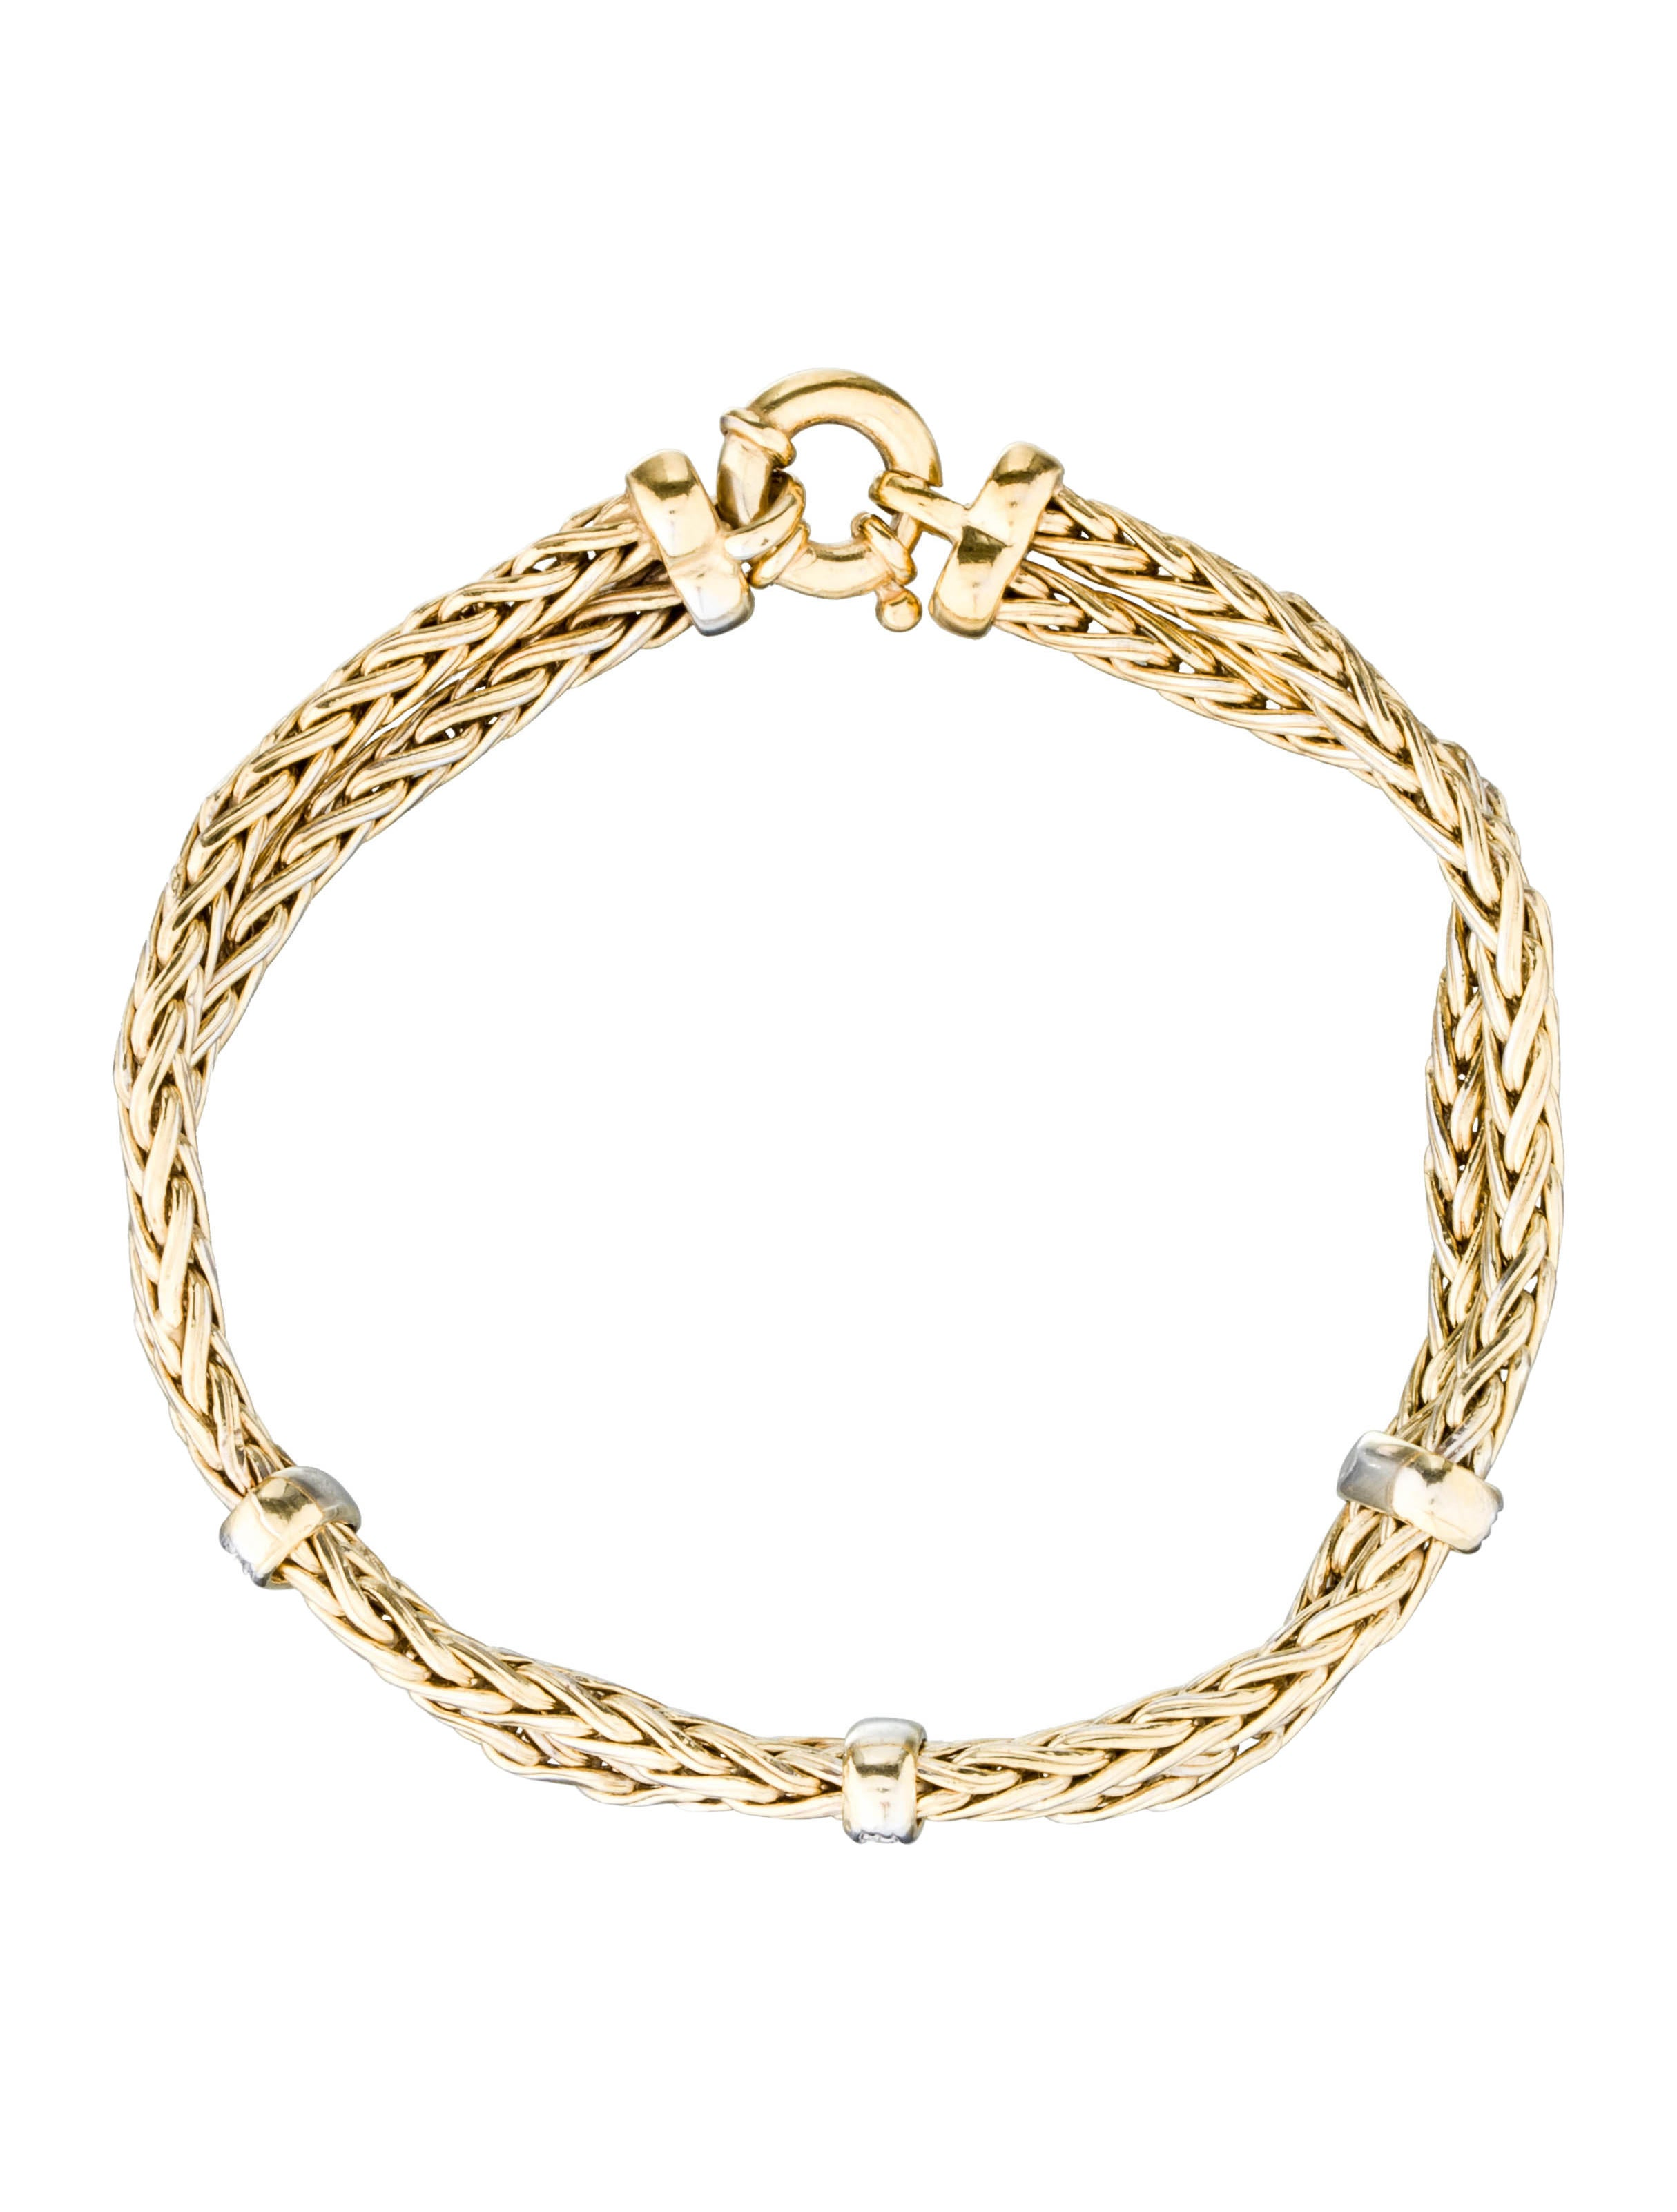 Diamond Anklet With Toe Ring Lc00035 In Anklets From: 14K Gold & Diamond Station Bracelet